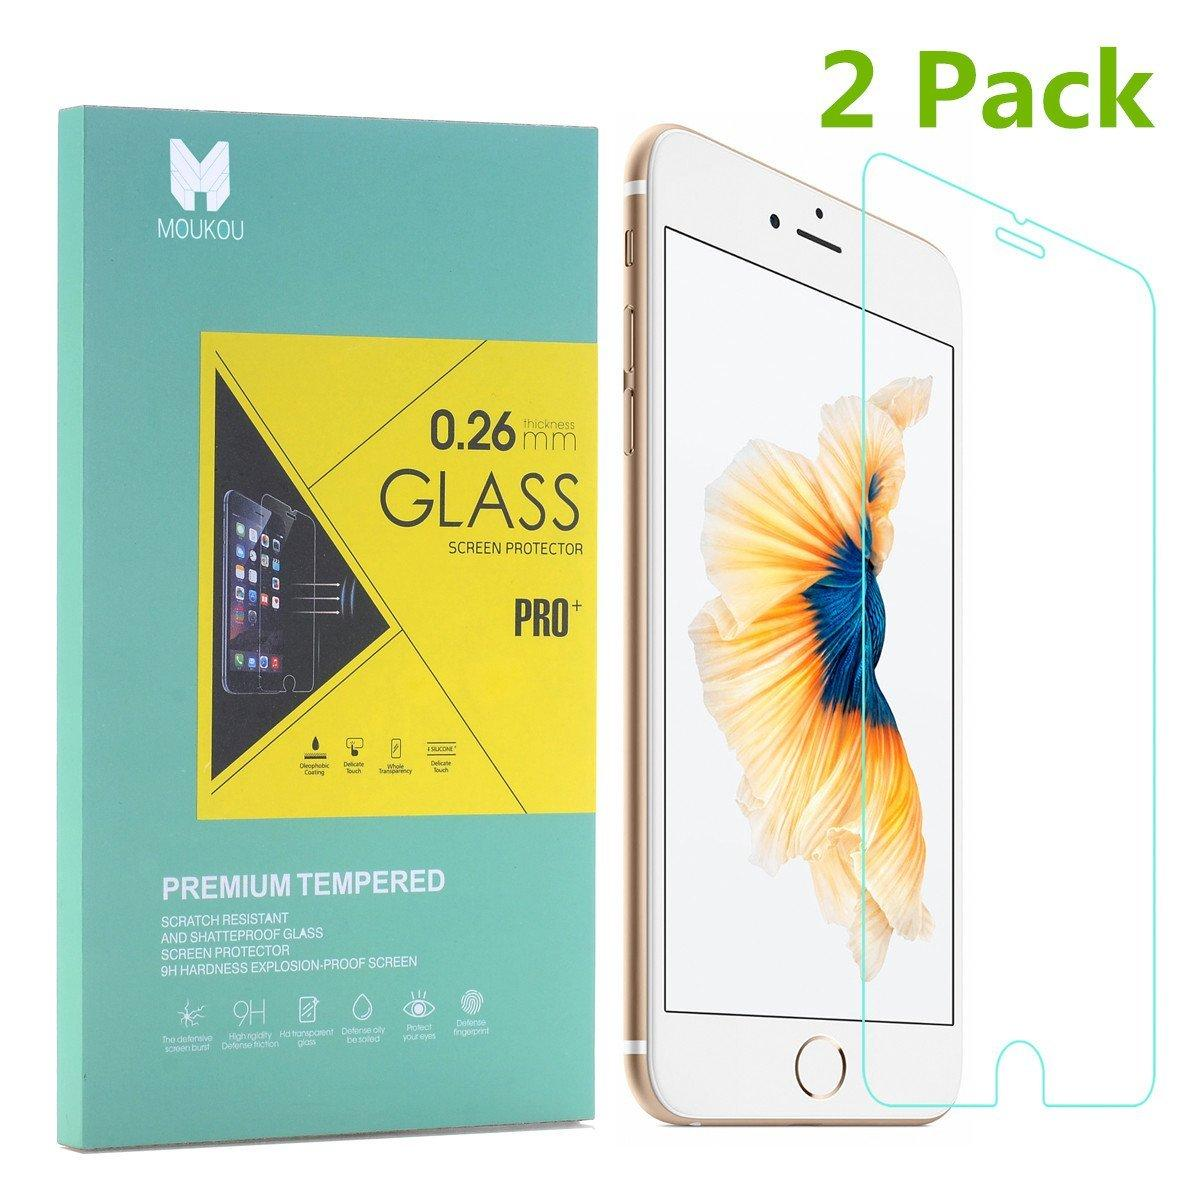 """$2.99 MouKou iPhone 6  Screen Protector Tempered Glass Screen Protectors 2-Pack Rounded Edges for iPhone 6/6s 4.7"""""""